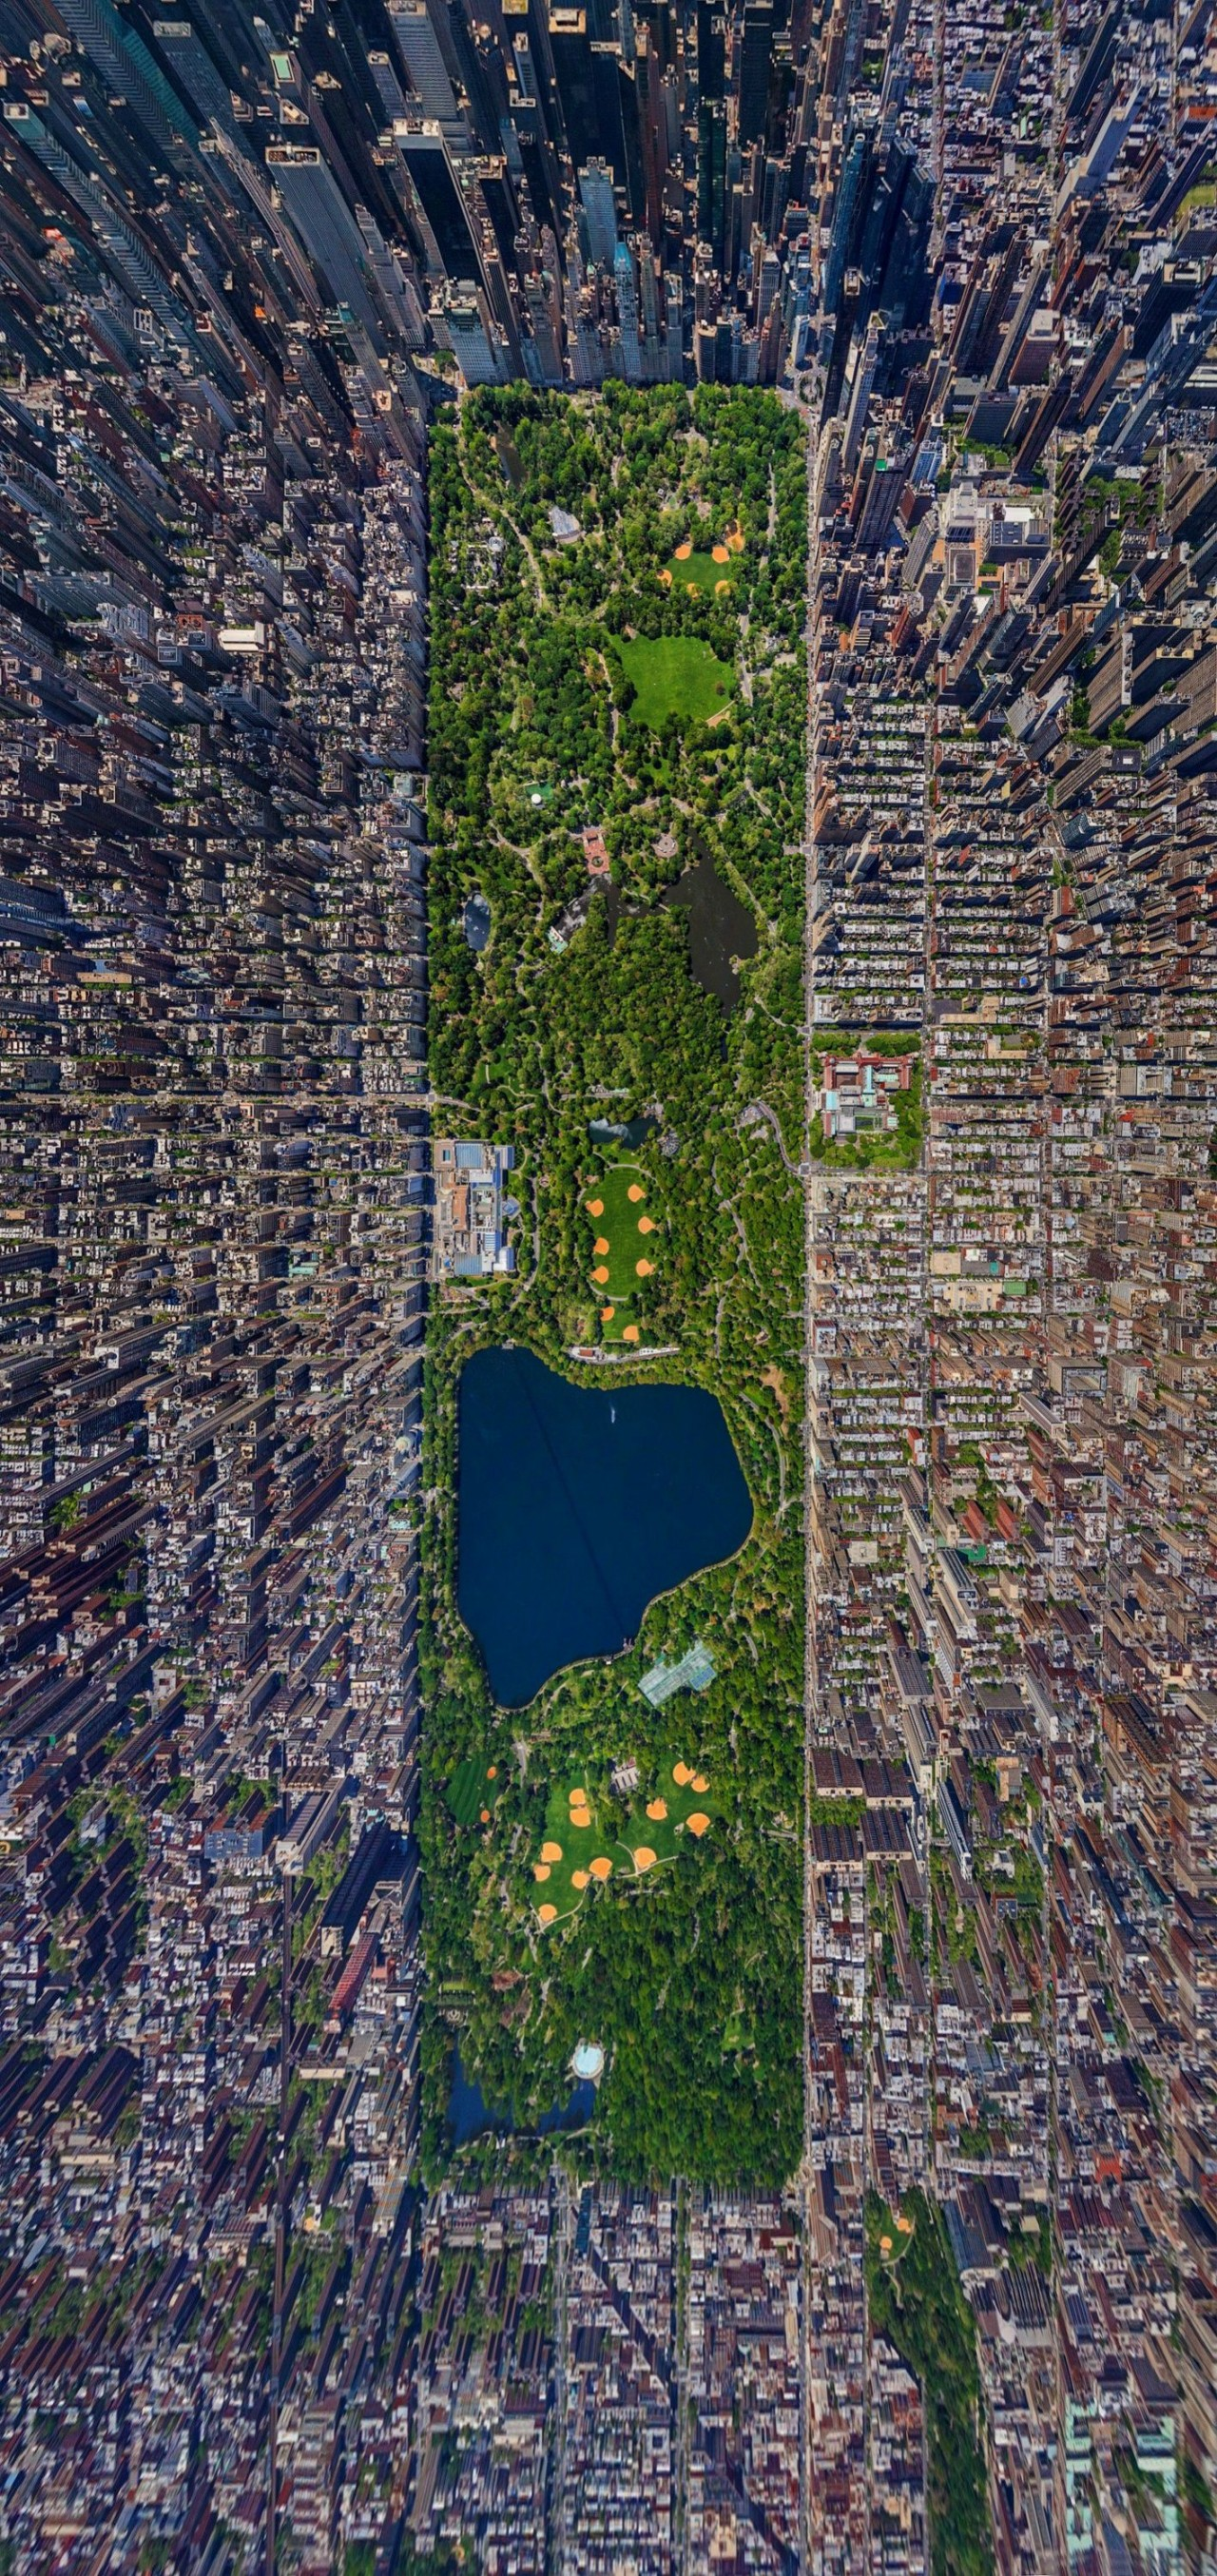 New York, Central Park, bird view